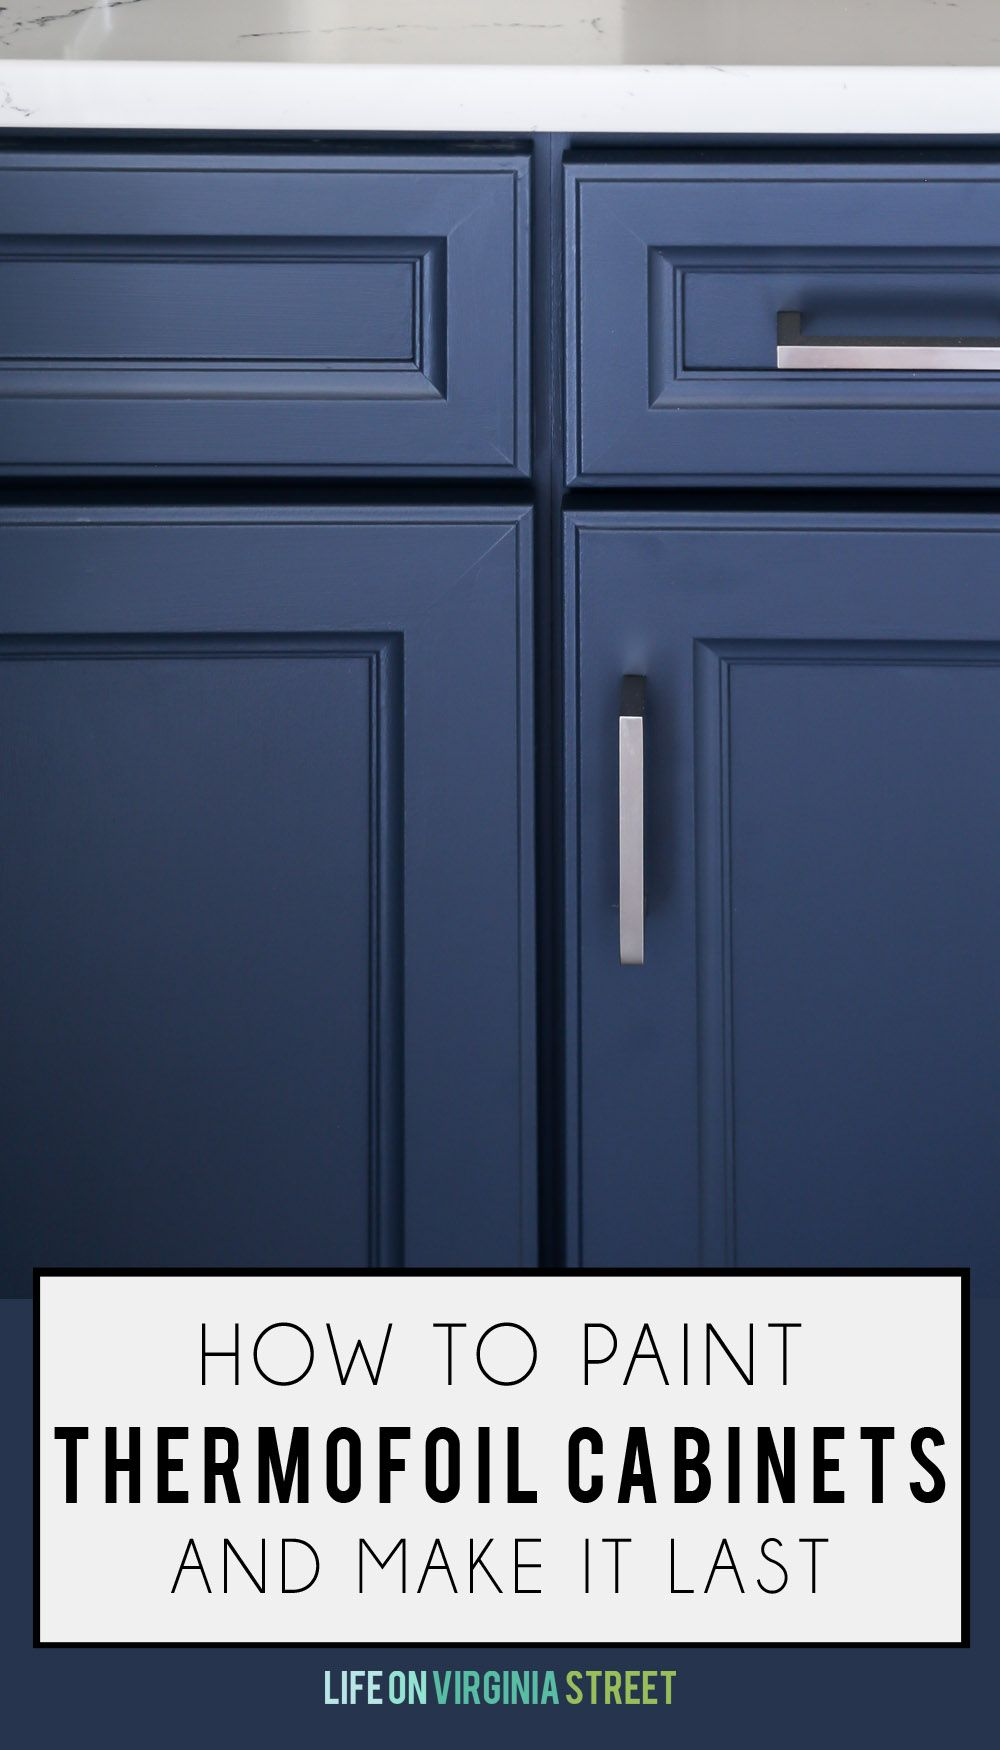 How To Paint Thermofoil Cabinets Thermofoil Cabinets Laminate Cabinets Painting Laminate Cabinets